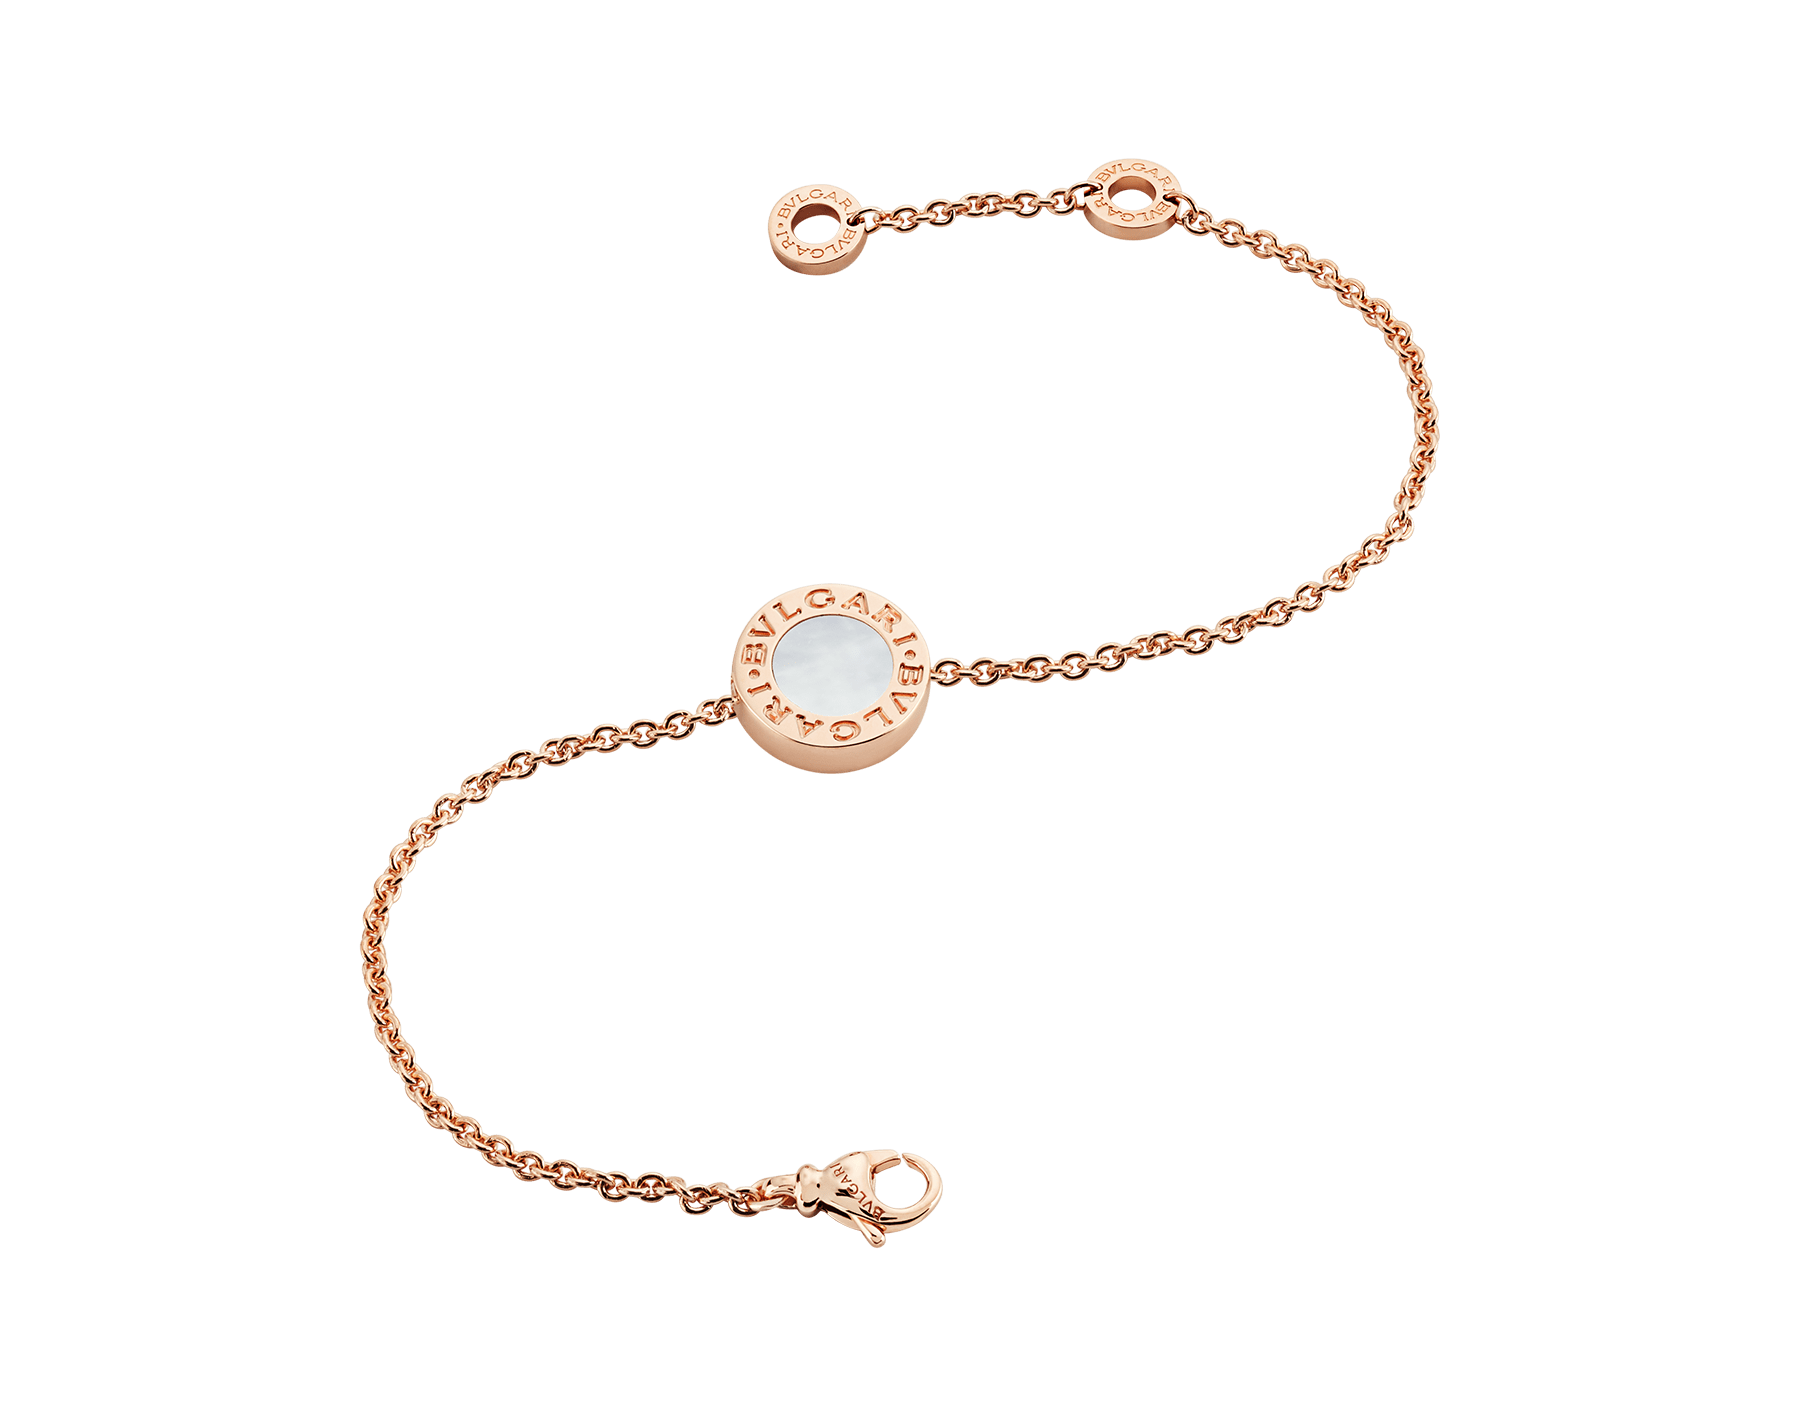 BVLGARI BVLGARI bracelet in 18 kt rose gold set with carnelian and mother-of-pearl round inserts. BR858008 image 2